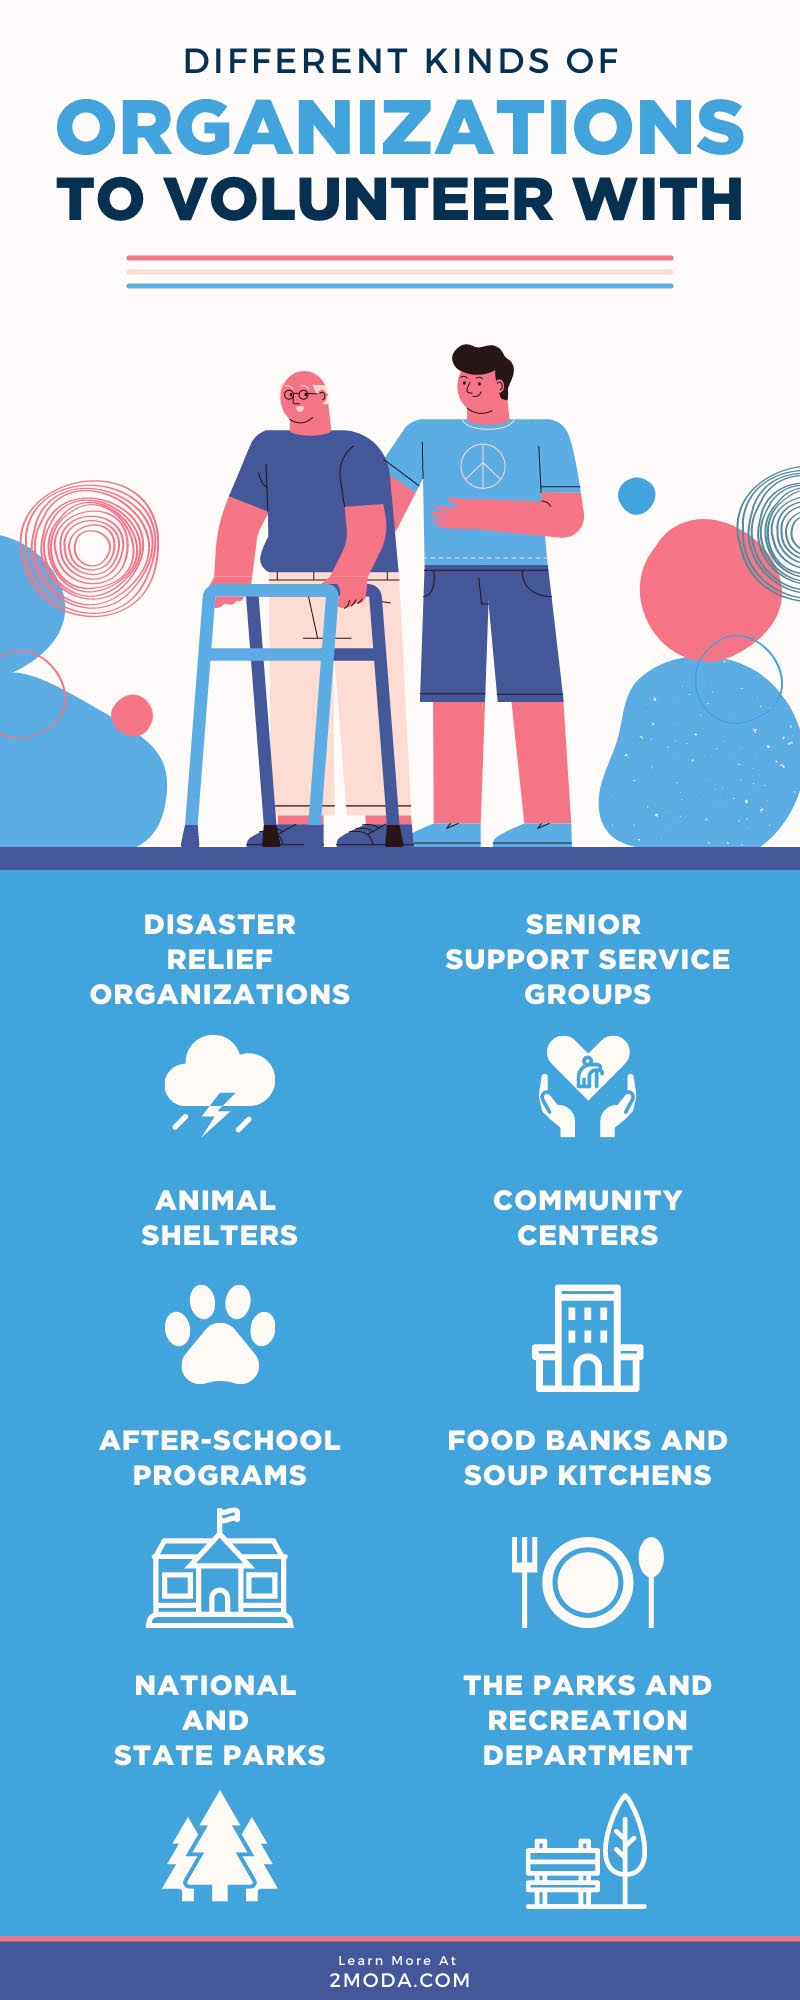 Different Kinds of Organizations to Volunteer With